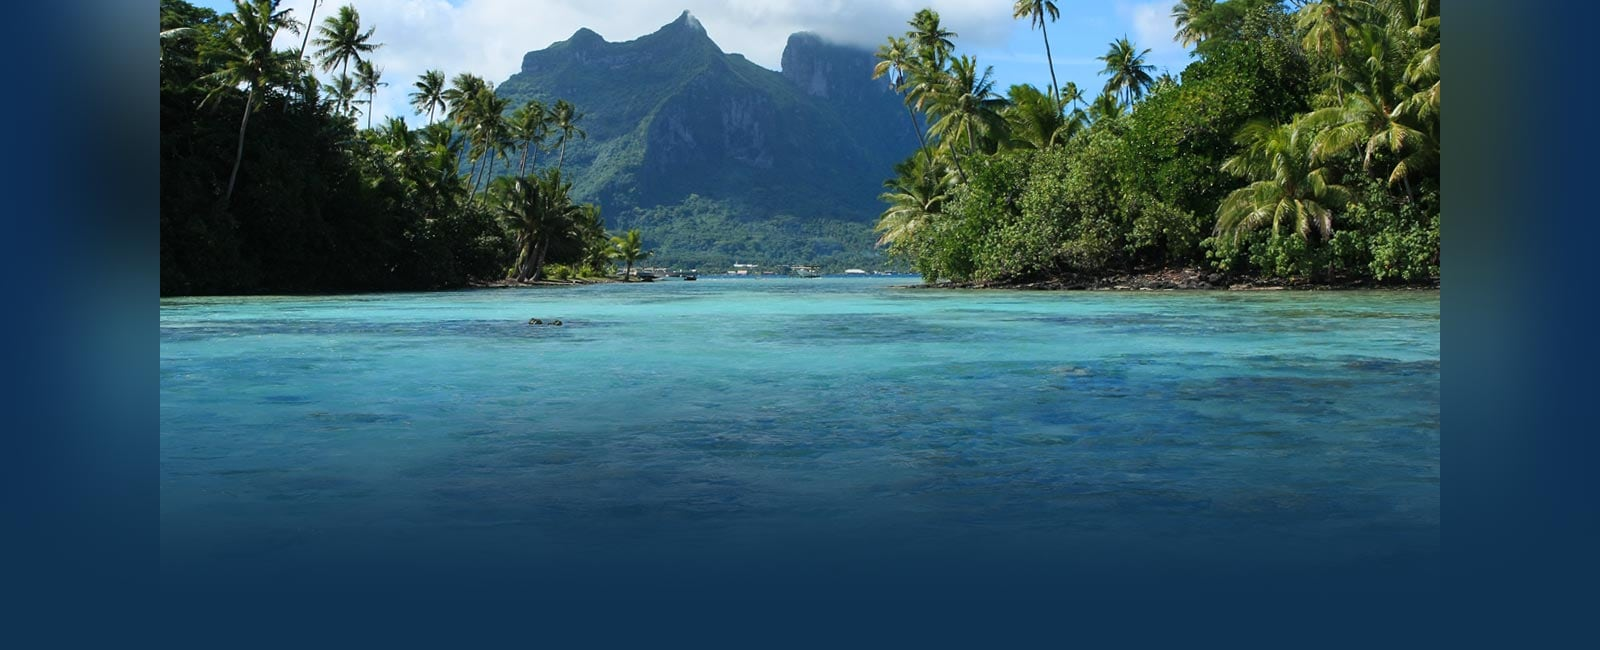 Tahiti shores with mountains